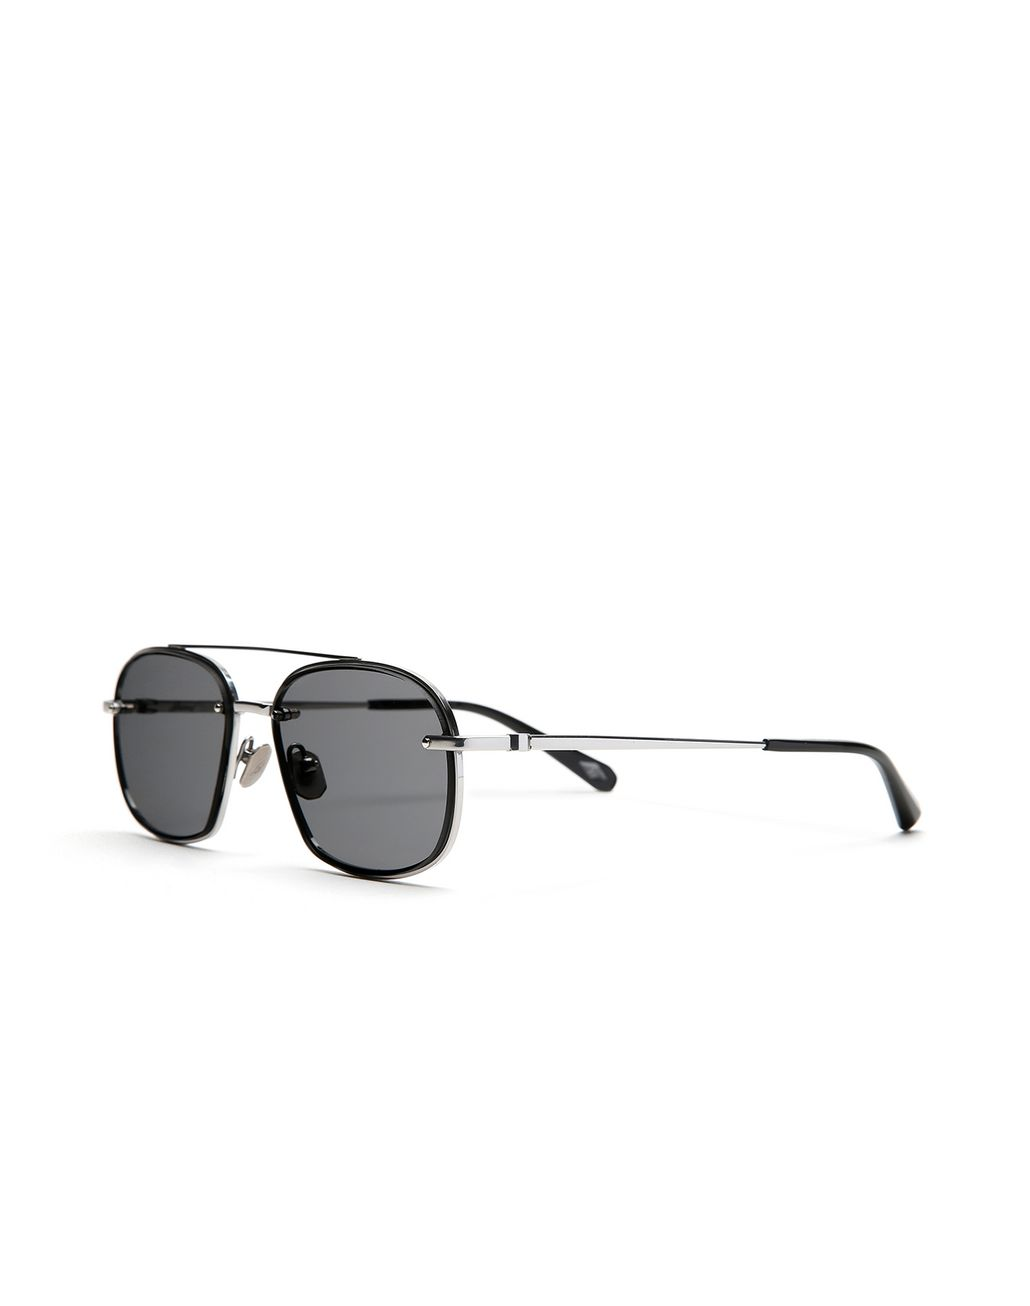 BRIONI Silver Teardrop Titanium Sunglasses with Grey Lenses  Sunglasses Man r